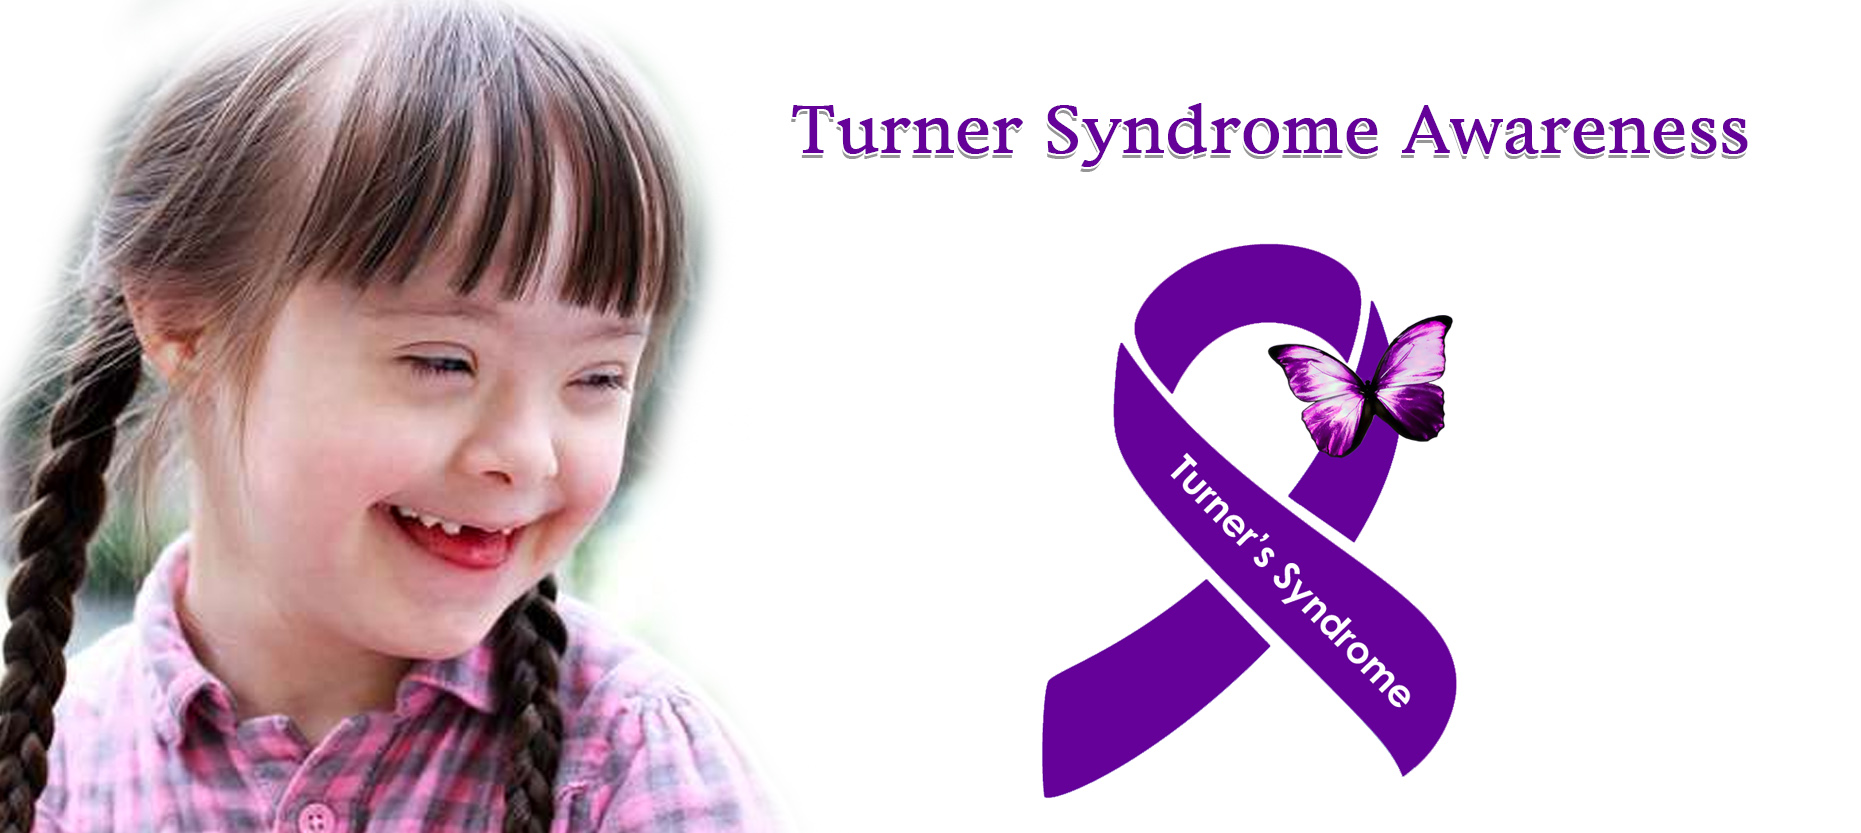 Turner Syndrome: Signs, Symptoms, Treatment